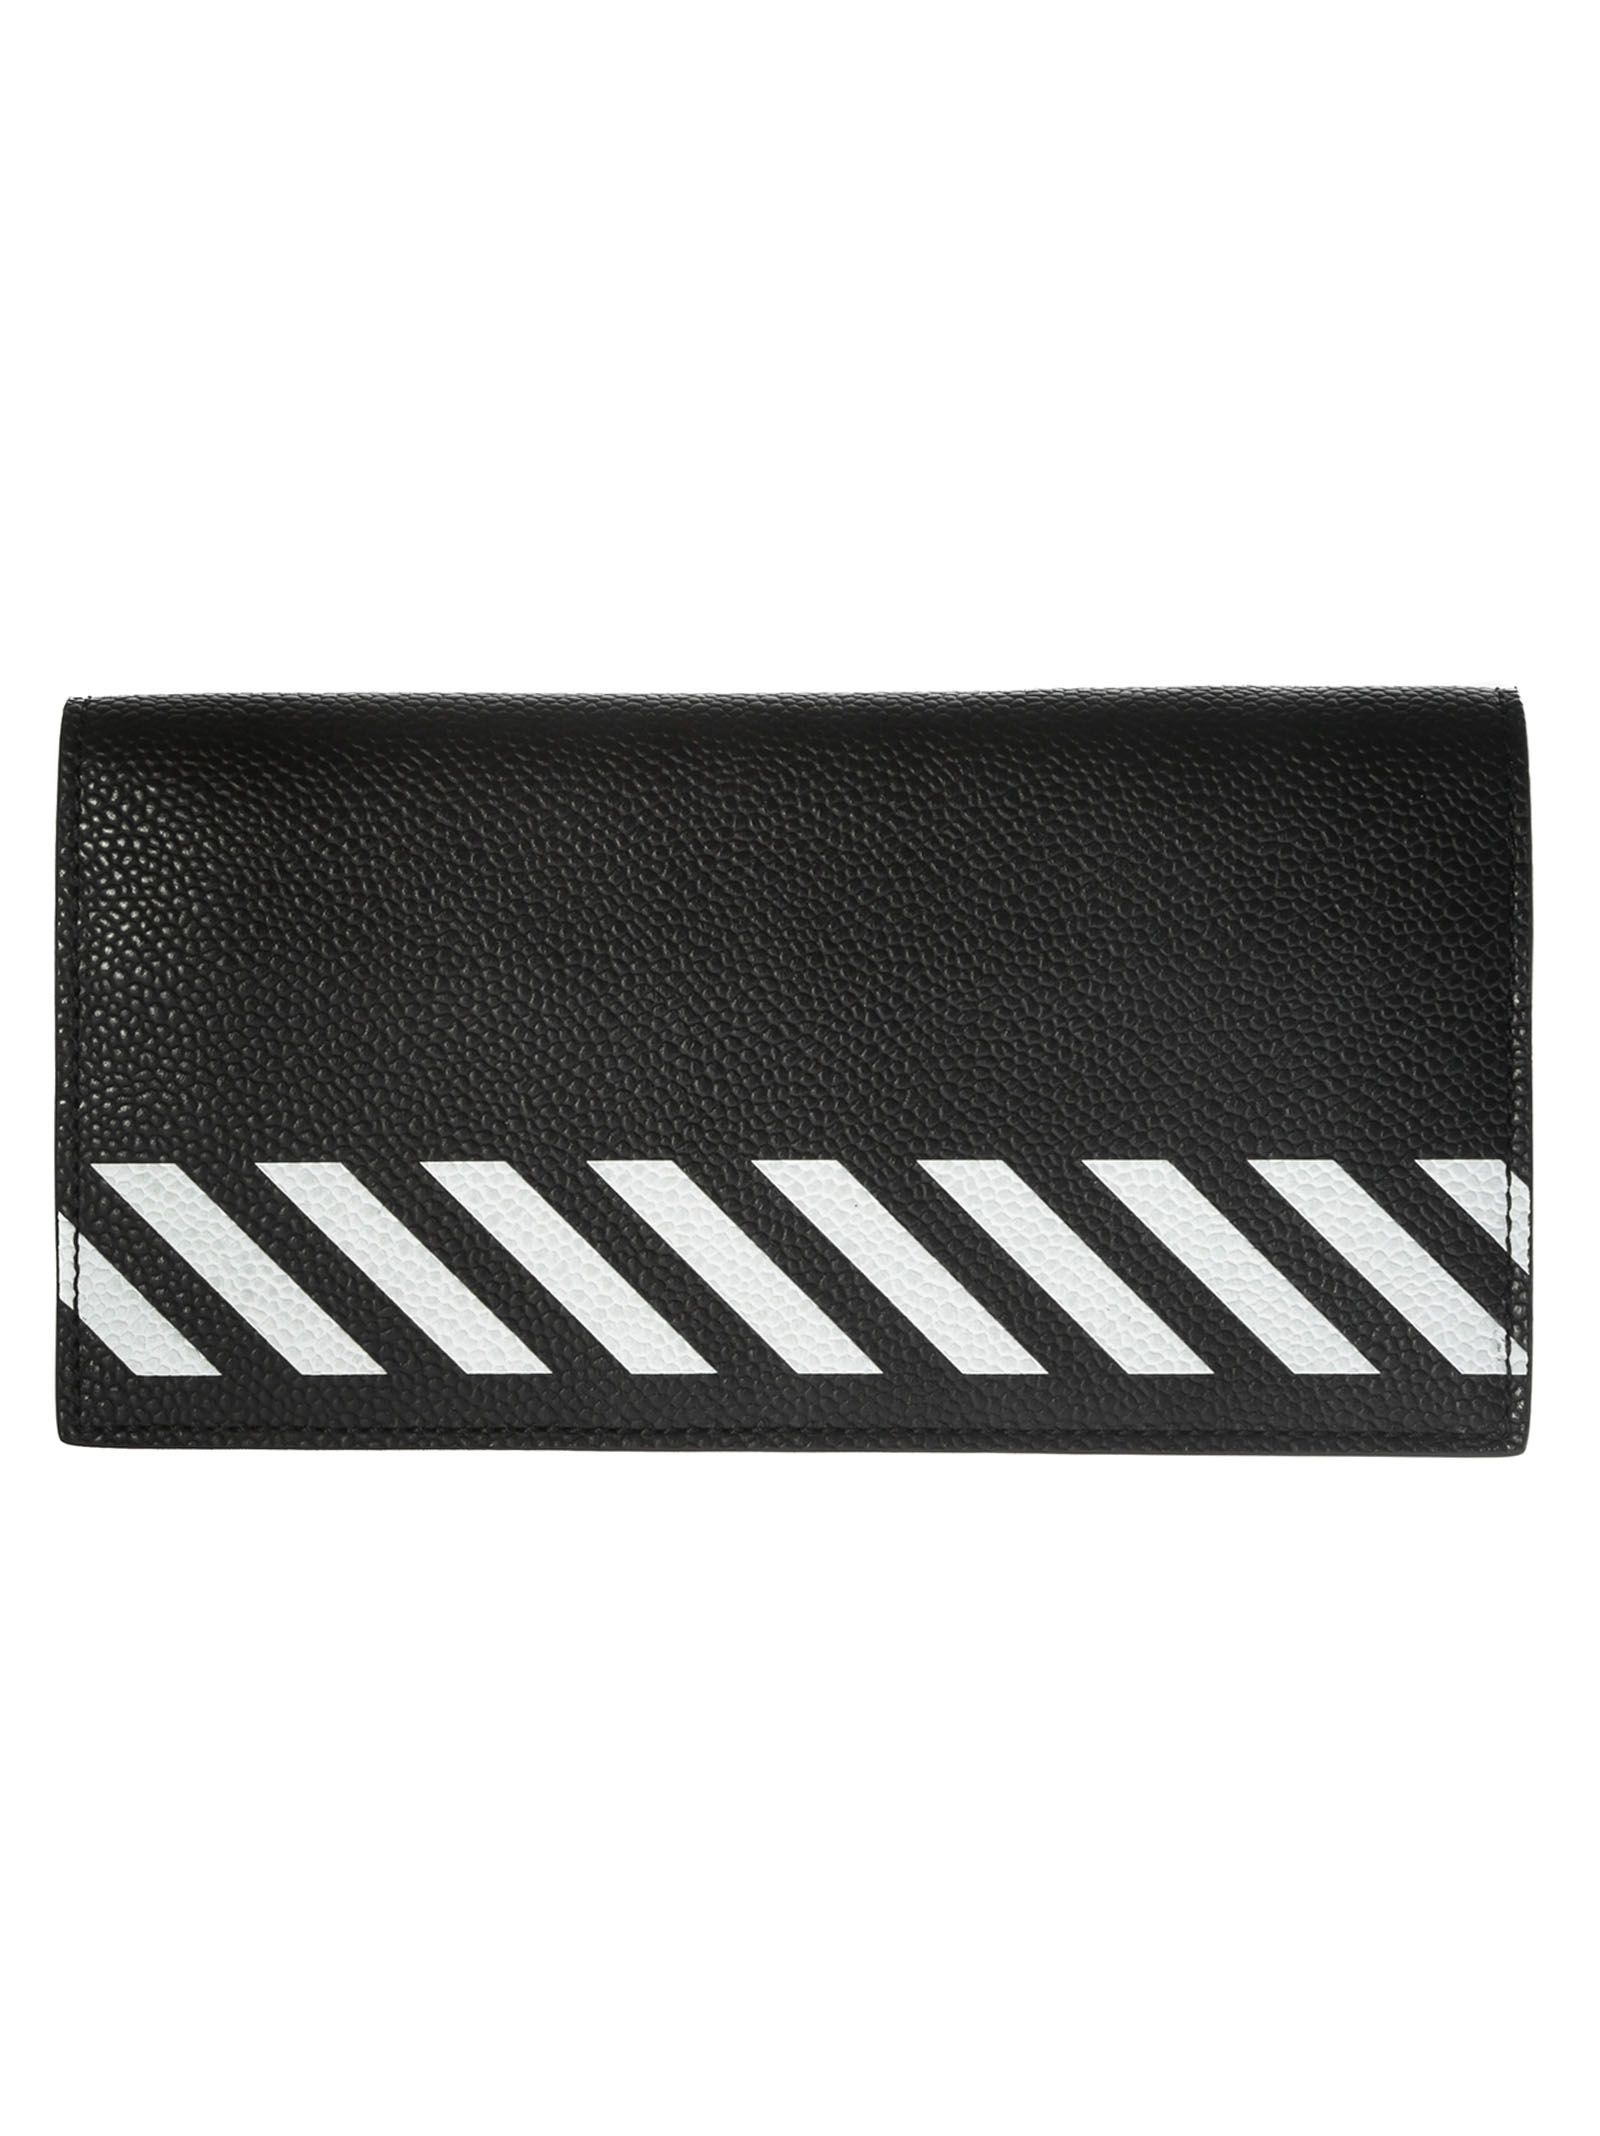 Off-white Striped Wallet